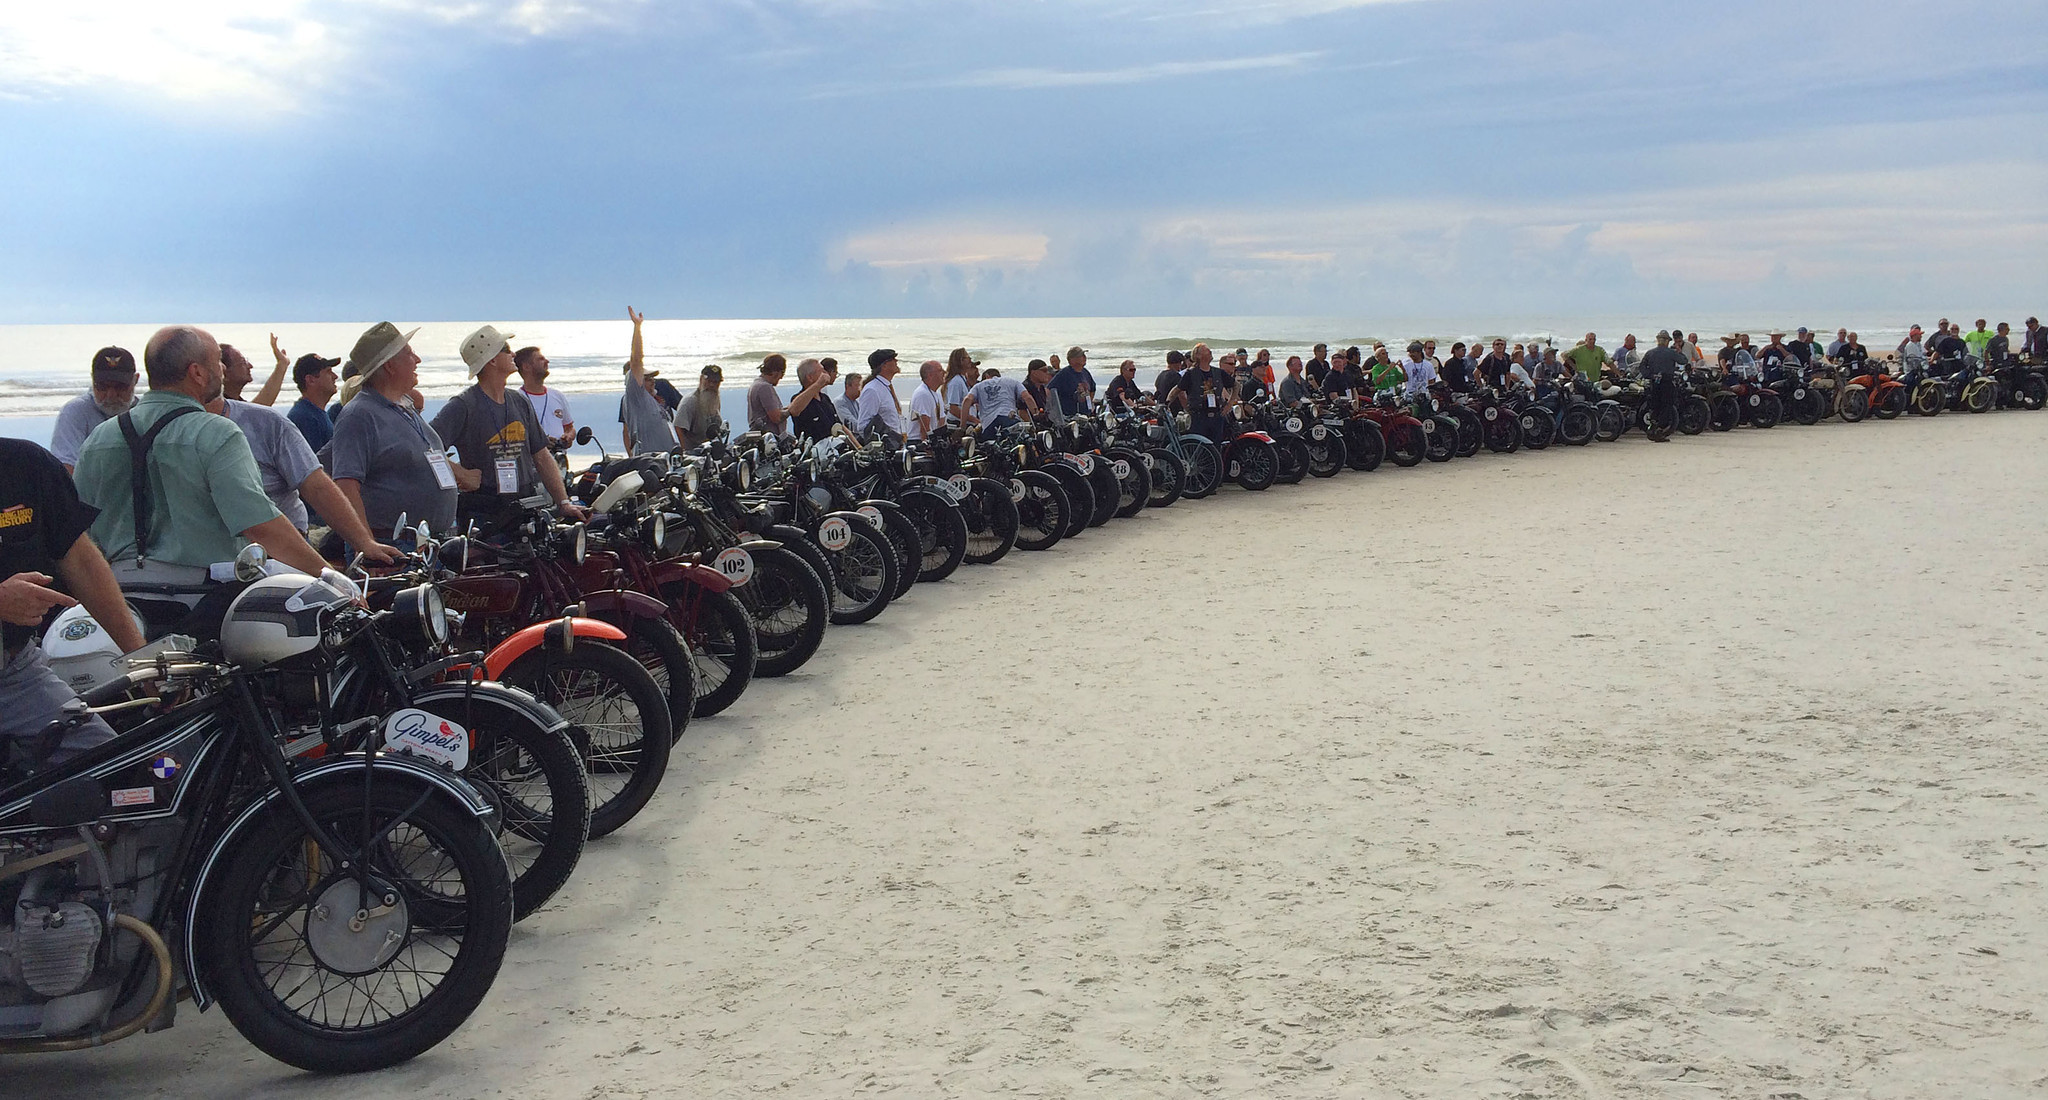 os-motorcycle-cannonball-endurance-run-starts-in-daytona-beach-20140906.jpg